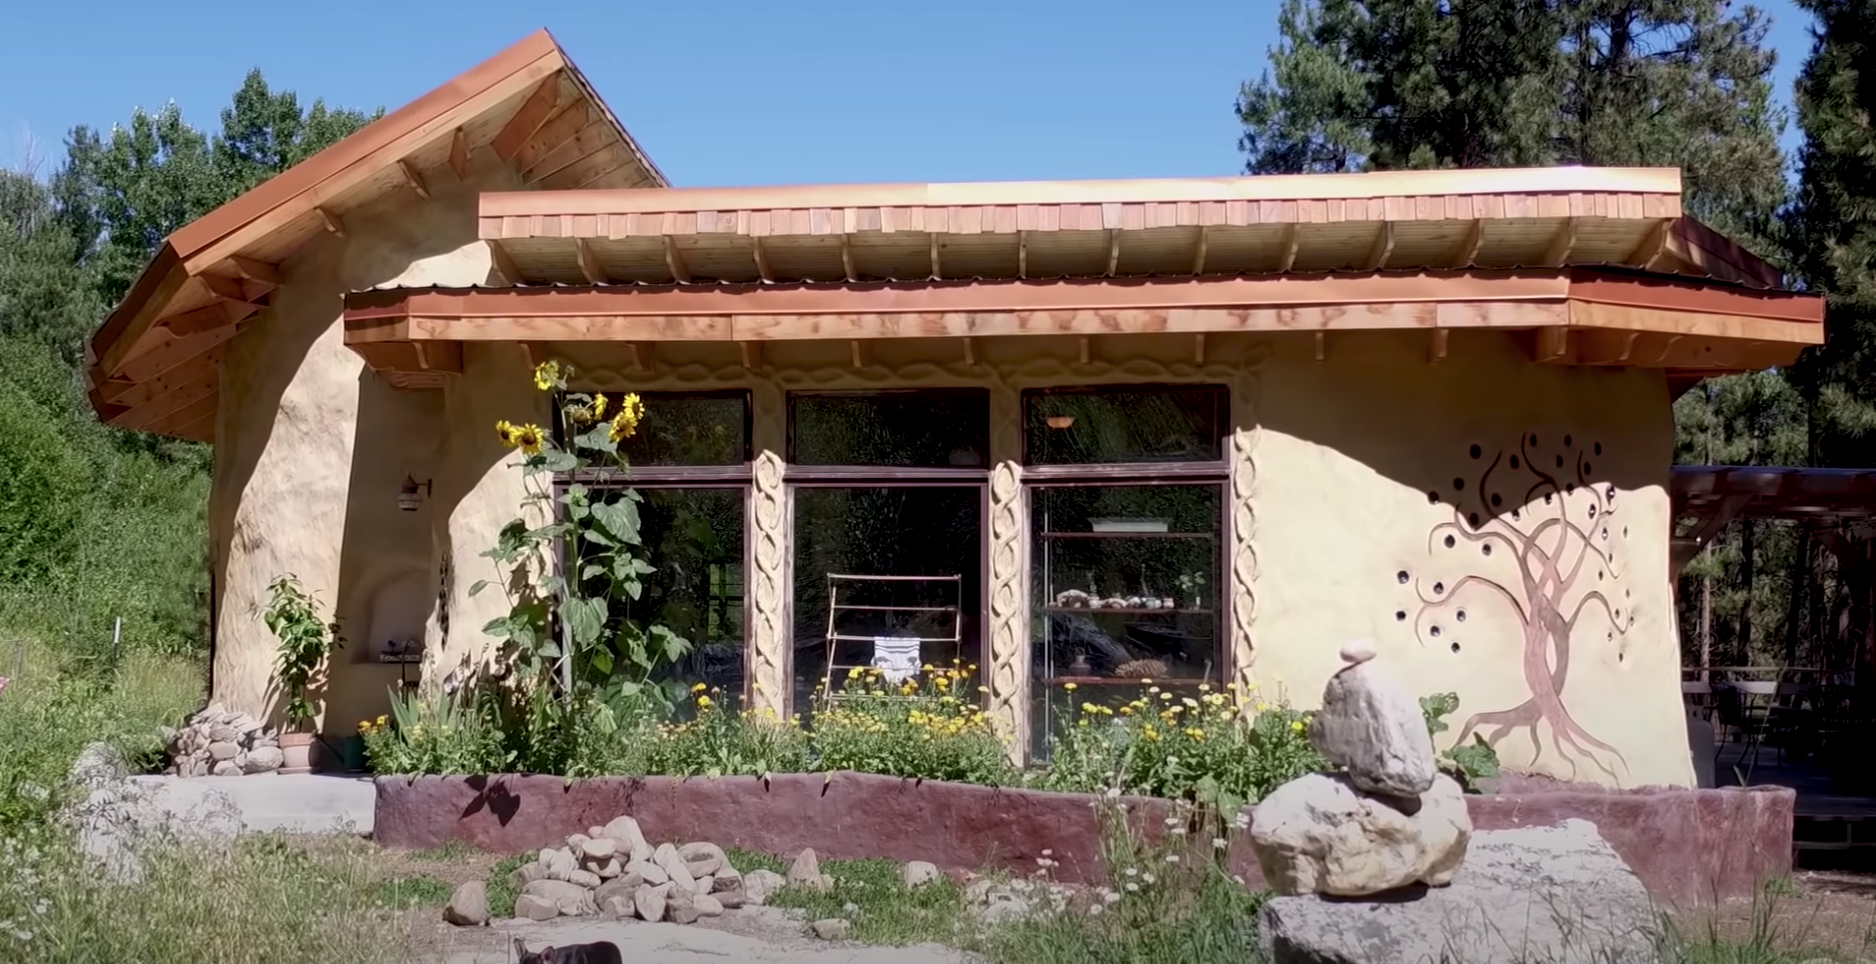 A beautiful, natural-looking home with lots of plants